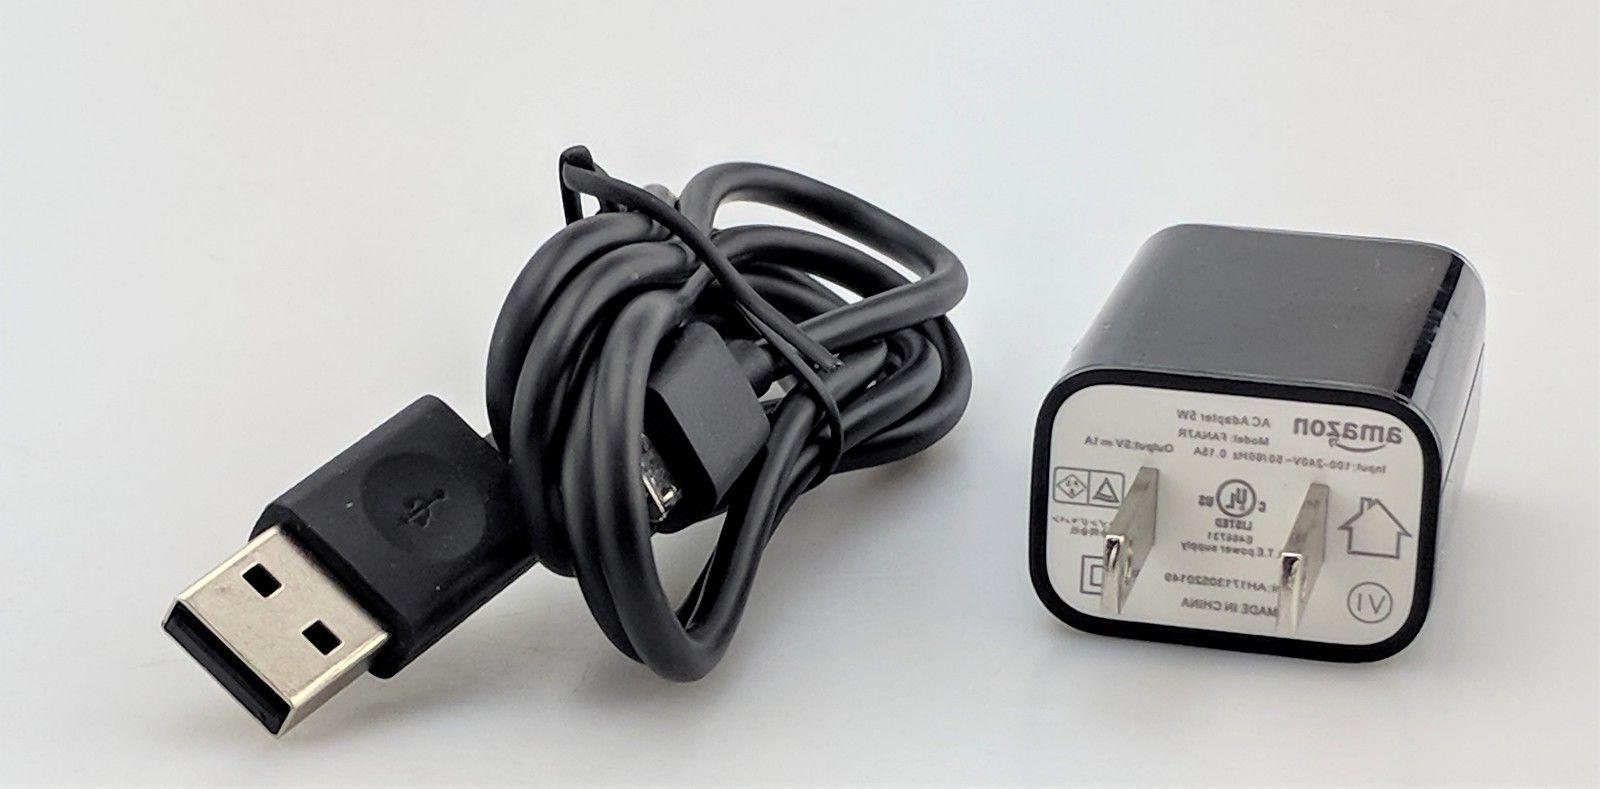 oem ac usb power adapter for kindle